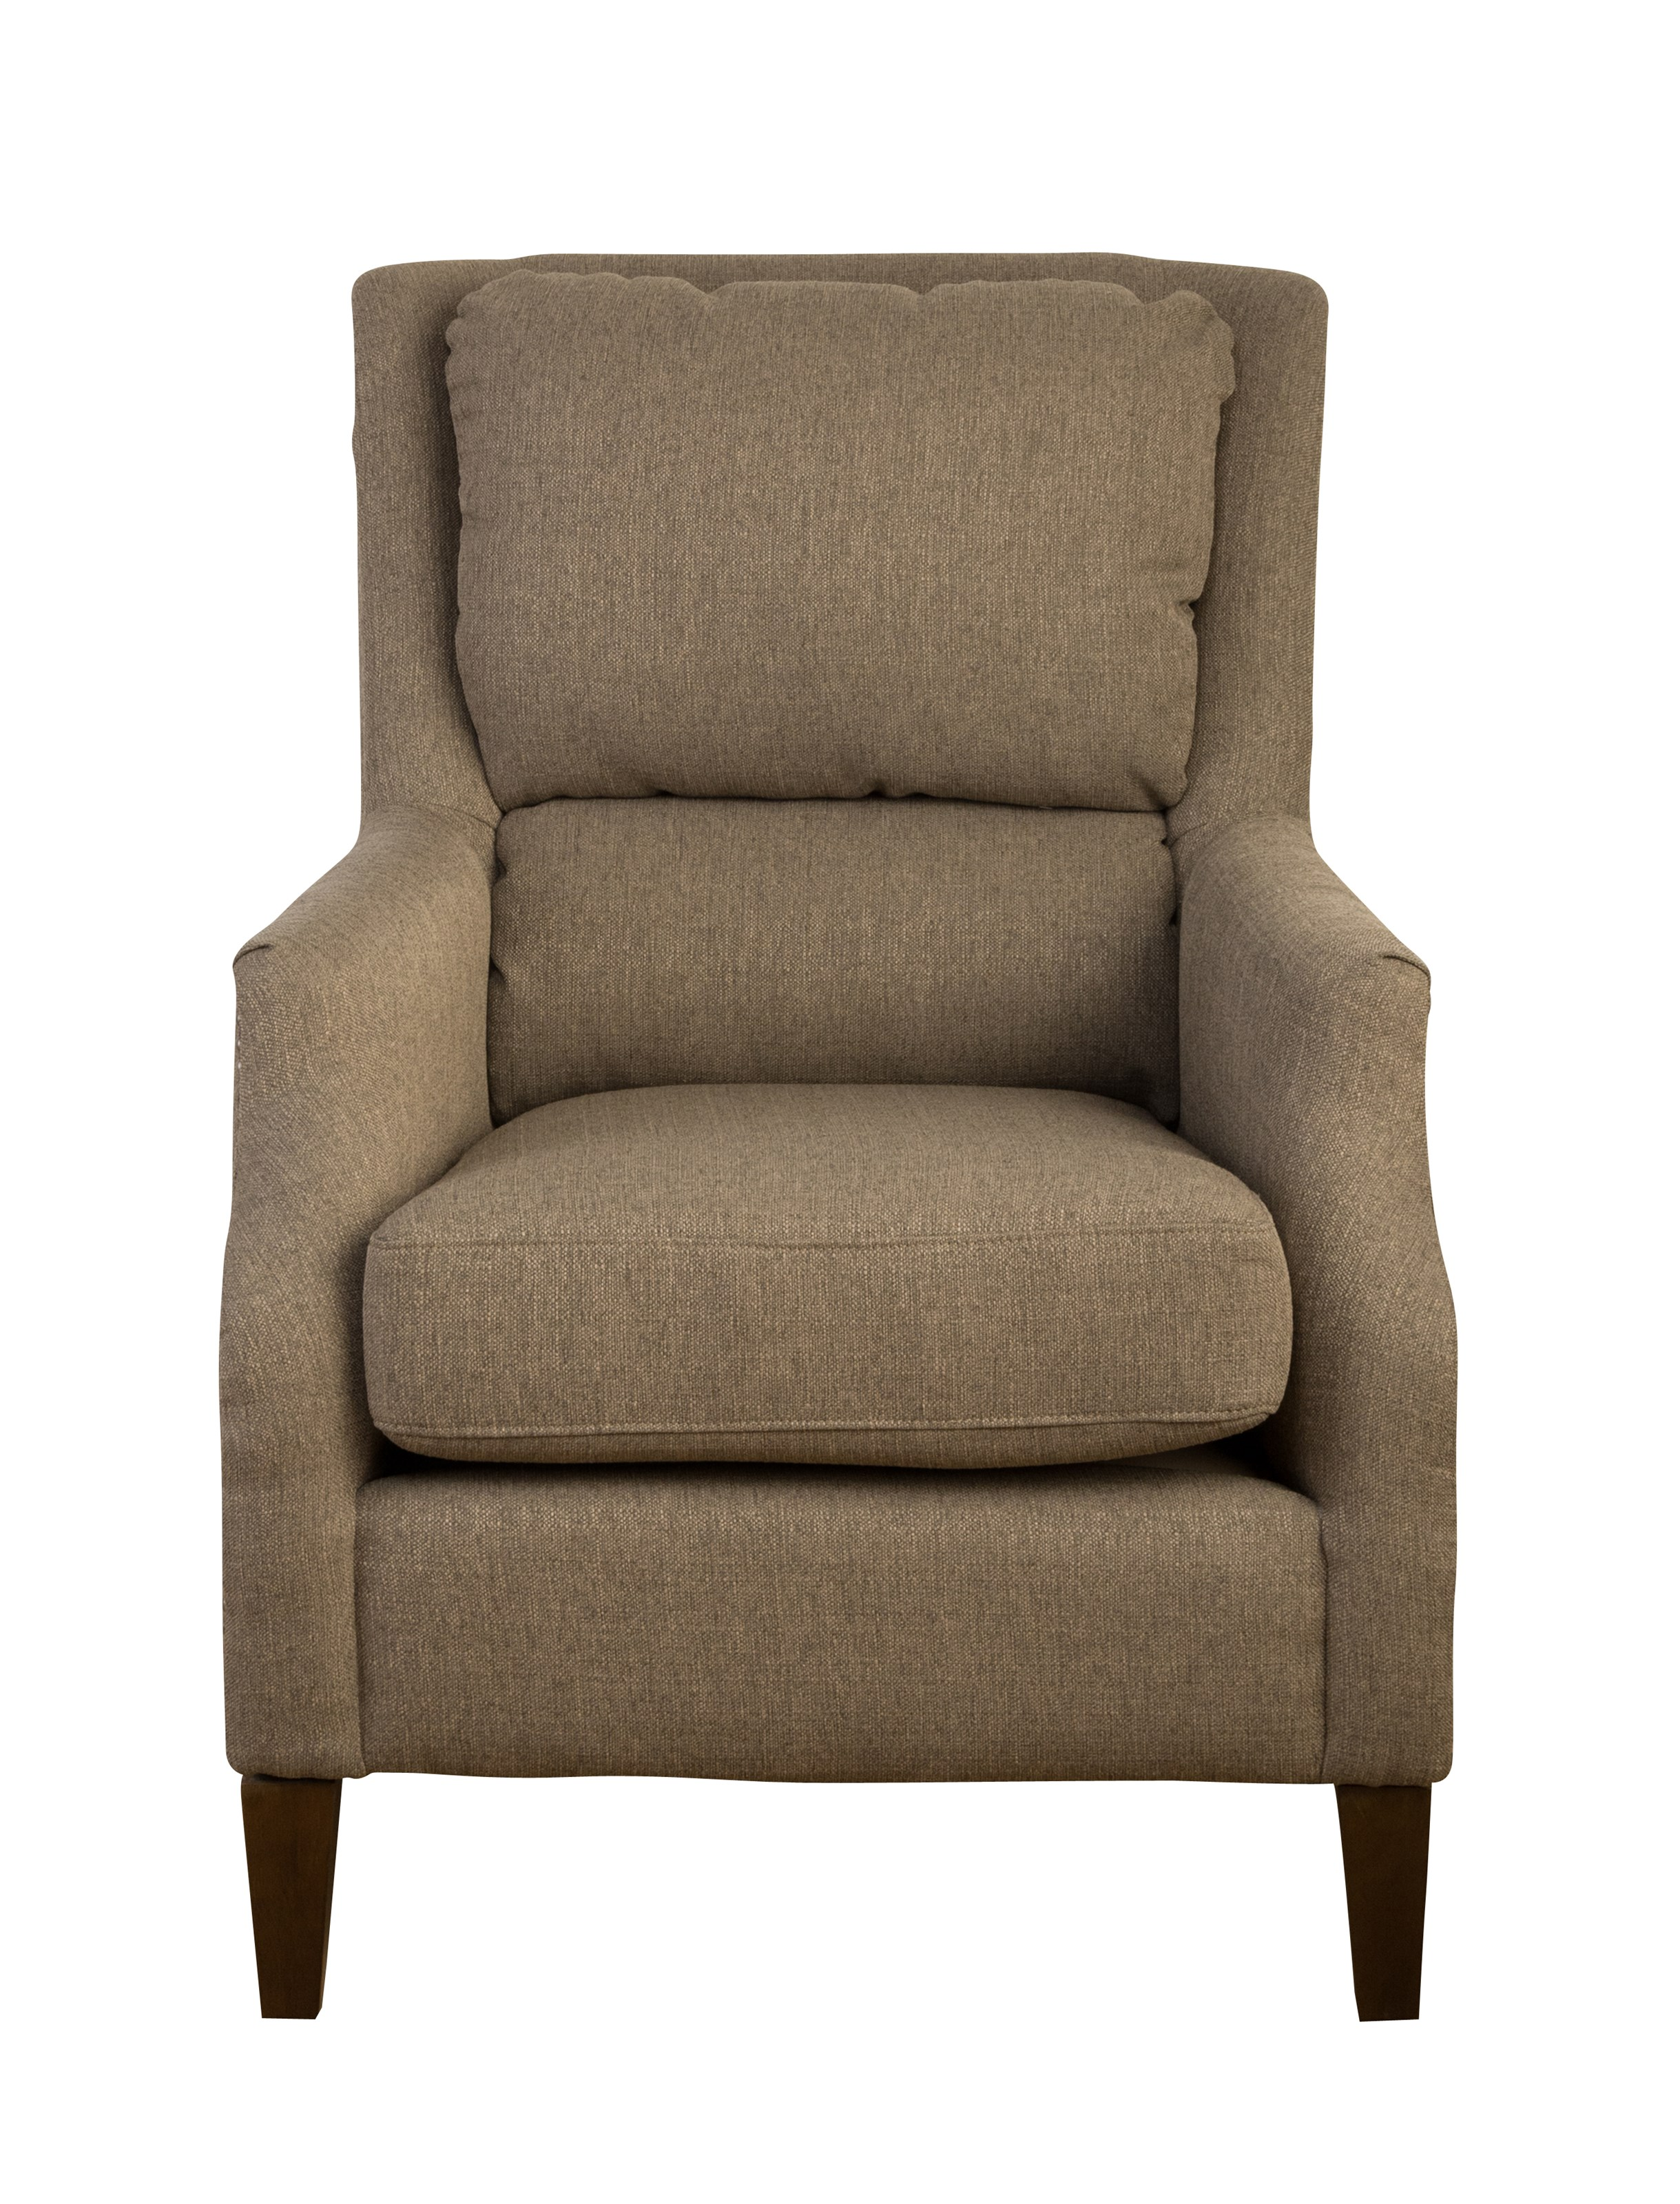 Jofran Accent Chairs Chandler Pillowback Accent Chair - Item Number: CHANDLER-CH-FORAGE